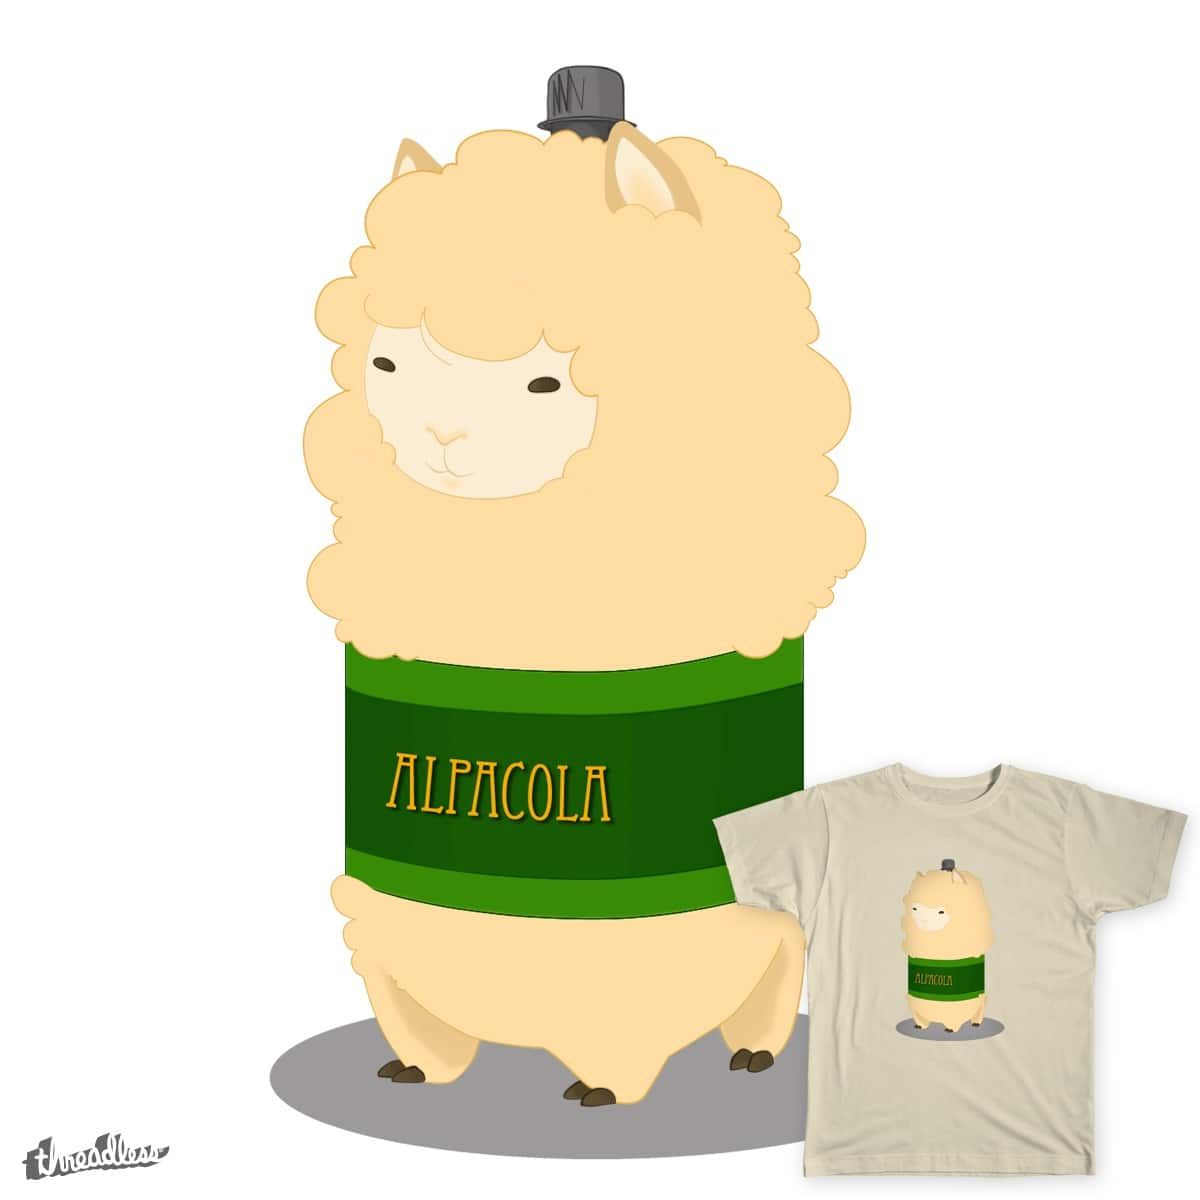 Alpacola by alpacola on Threadless